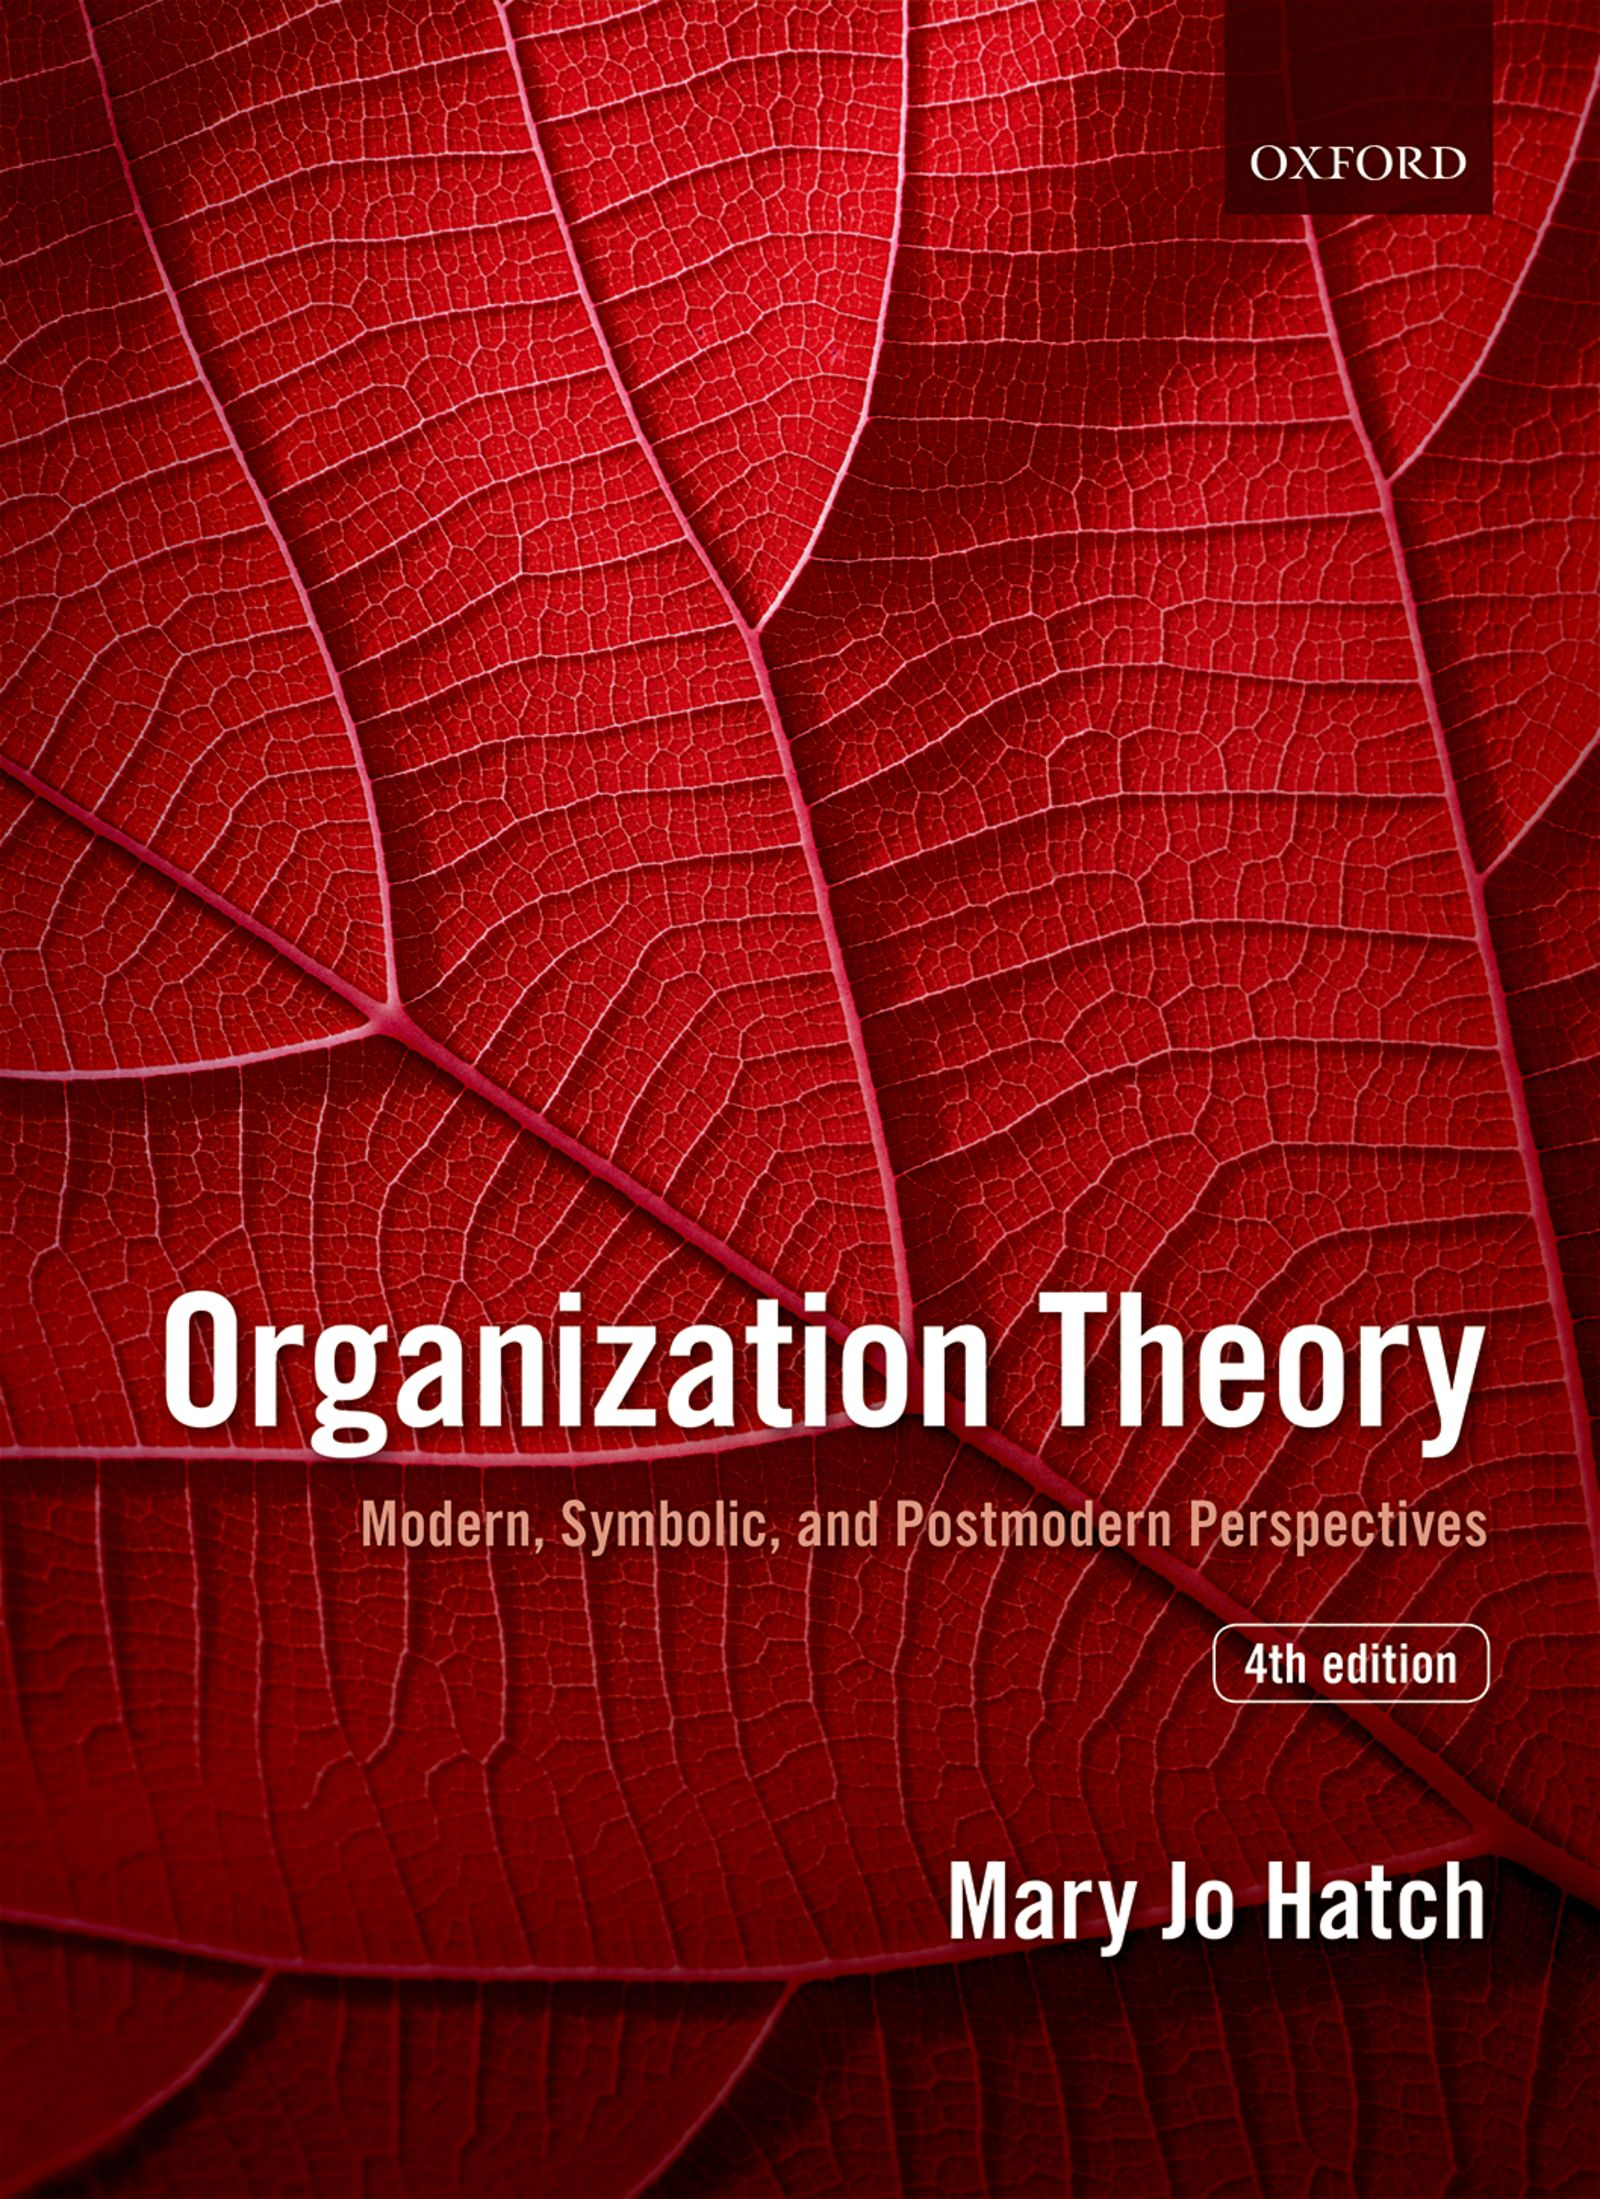 Organization Theory 4e Student Resources